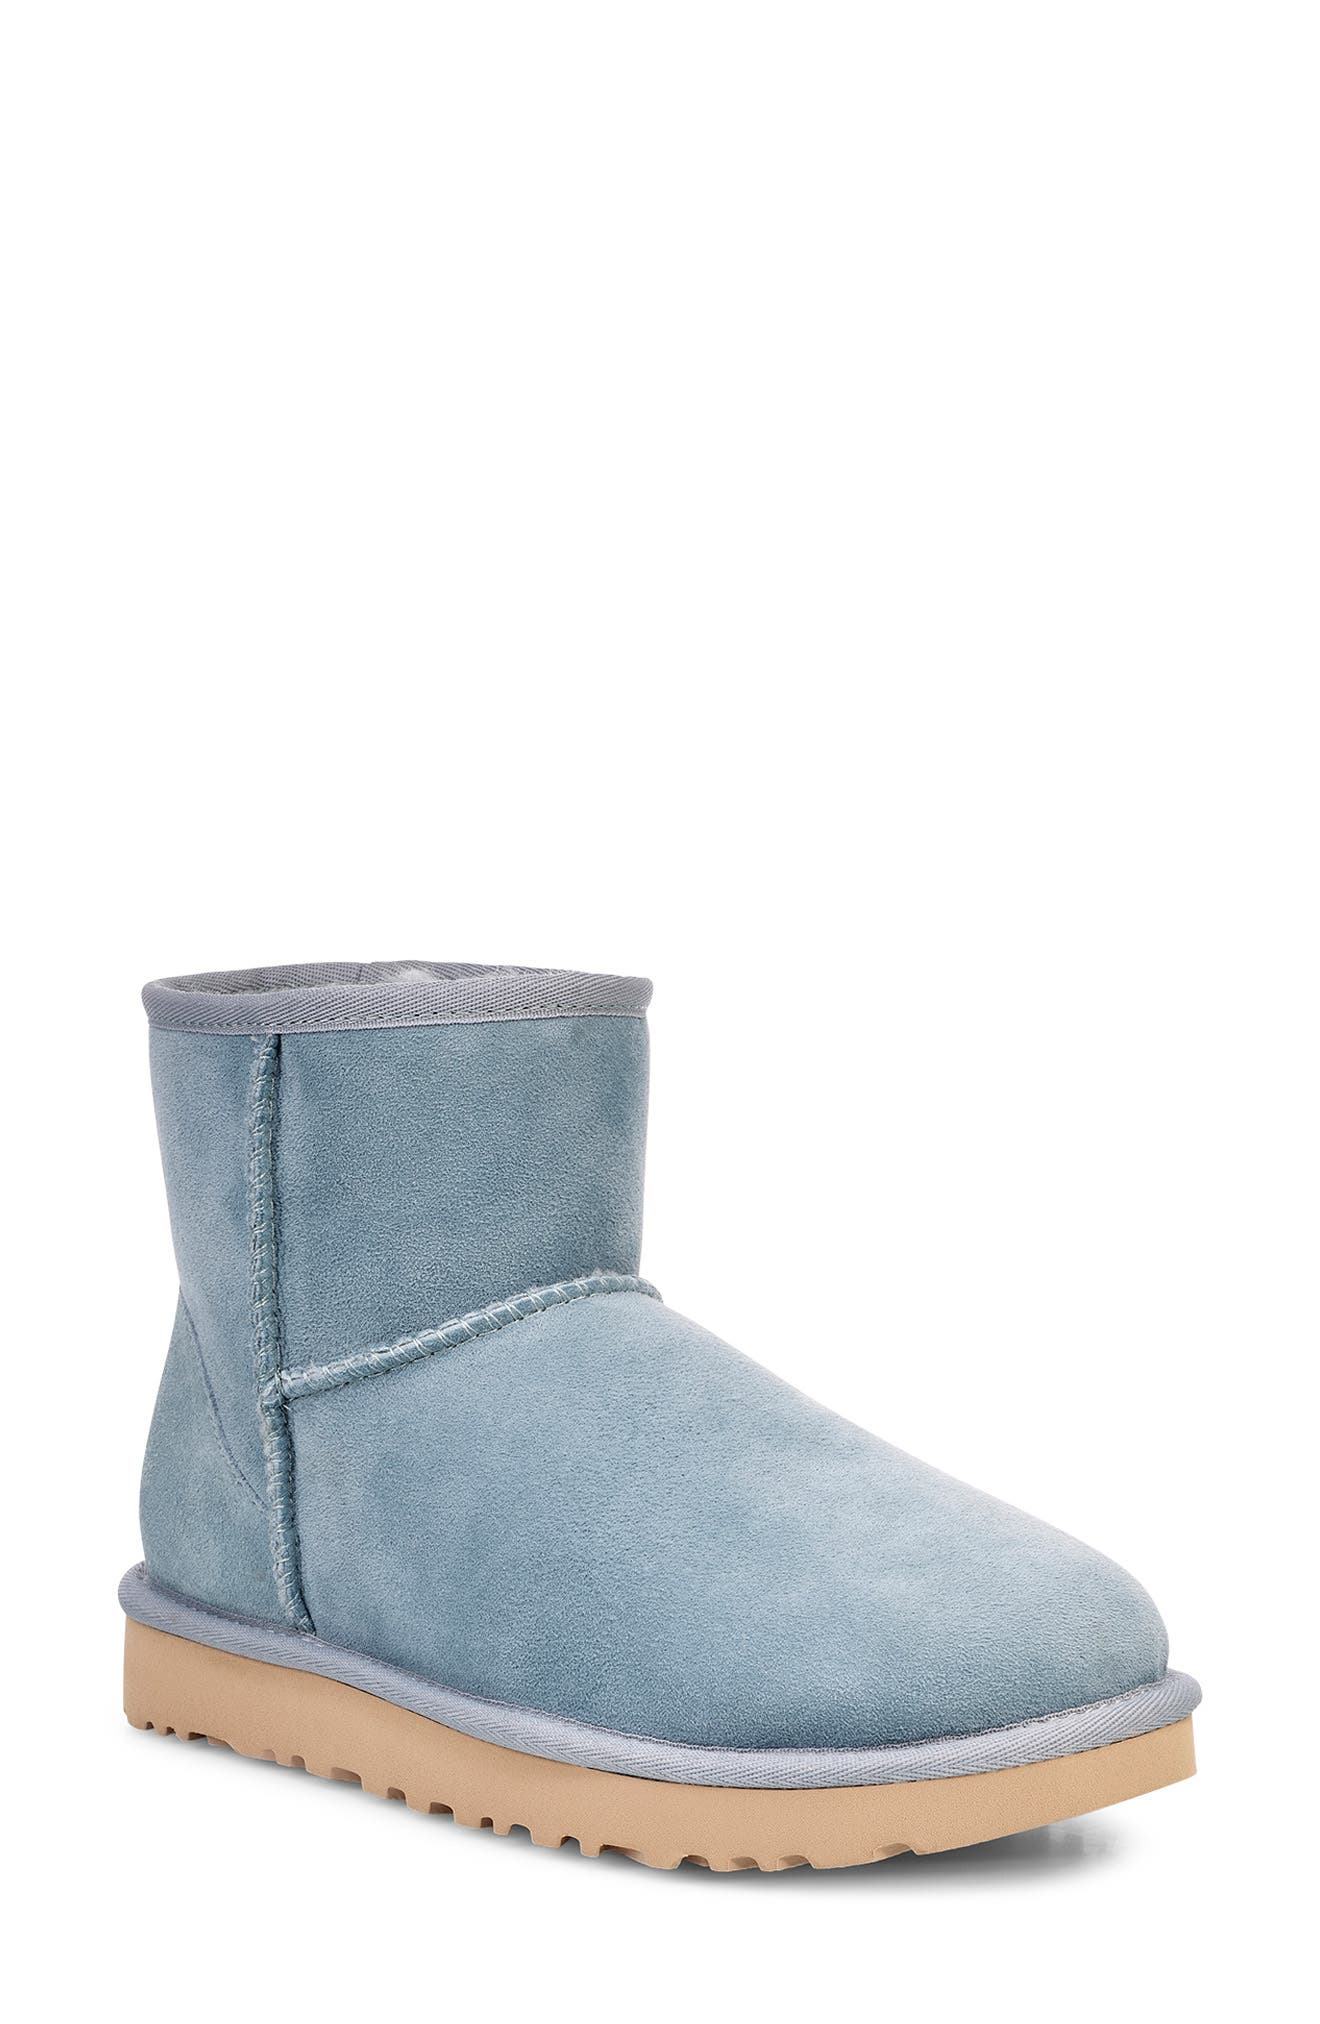 'Classic Mini II' Genuine Shearling Lined Boot,                             Main thumbnail 1, color,                             SUCCULENT SUEDE